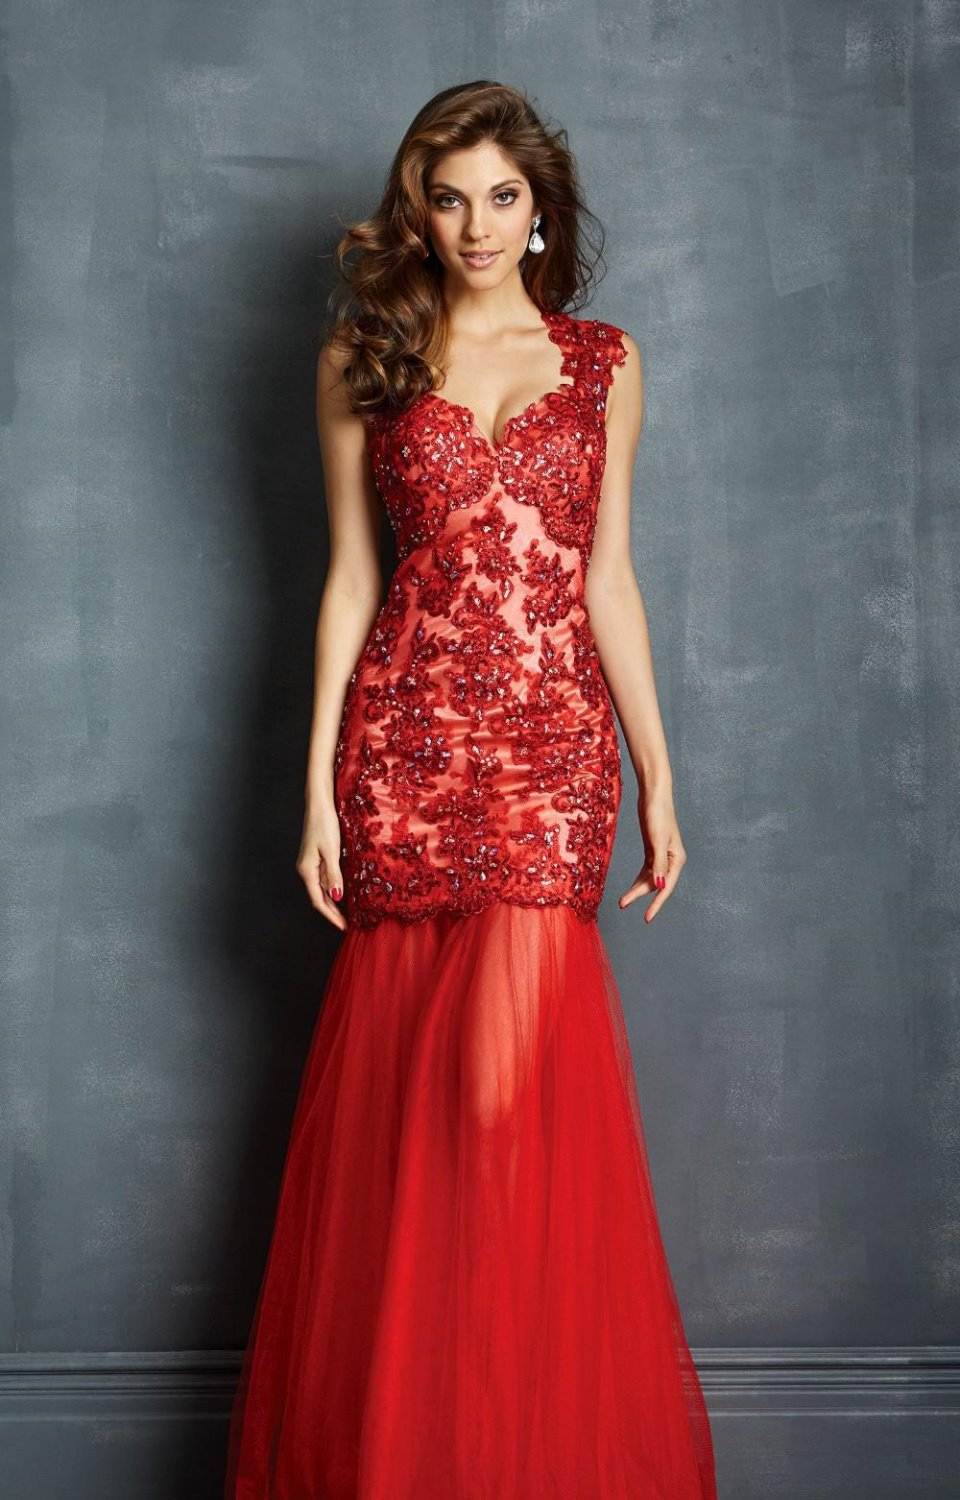 Party Prom Gown 2018hot Sexy Backless Vestido De Festa Red Long Formal Lace Evening Abendkleider Mother Of The Bride Dresses